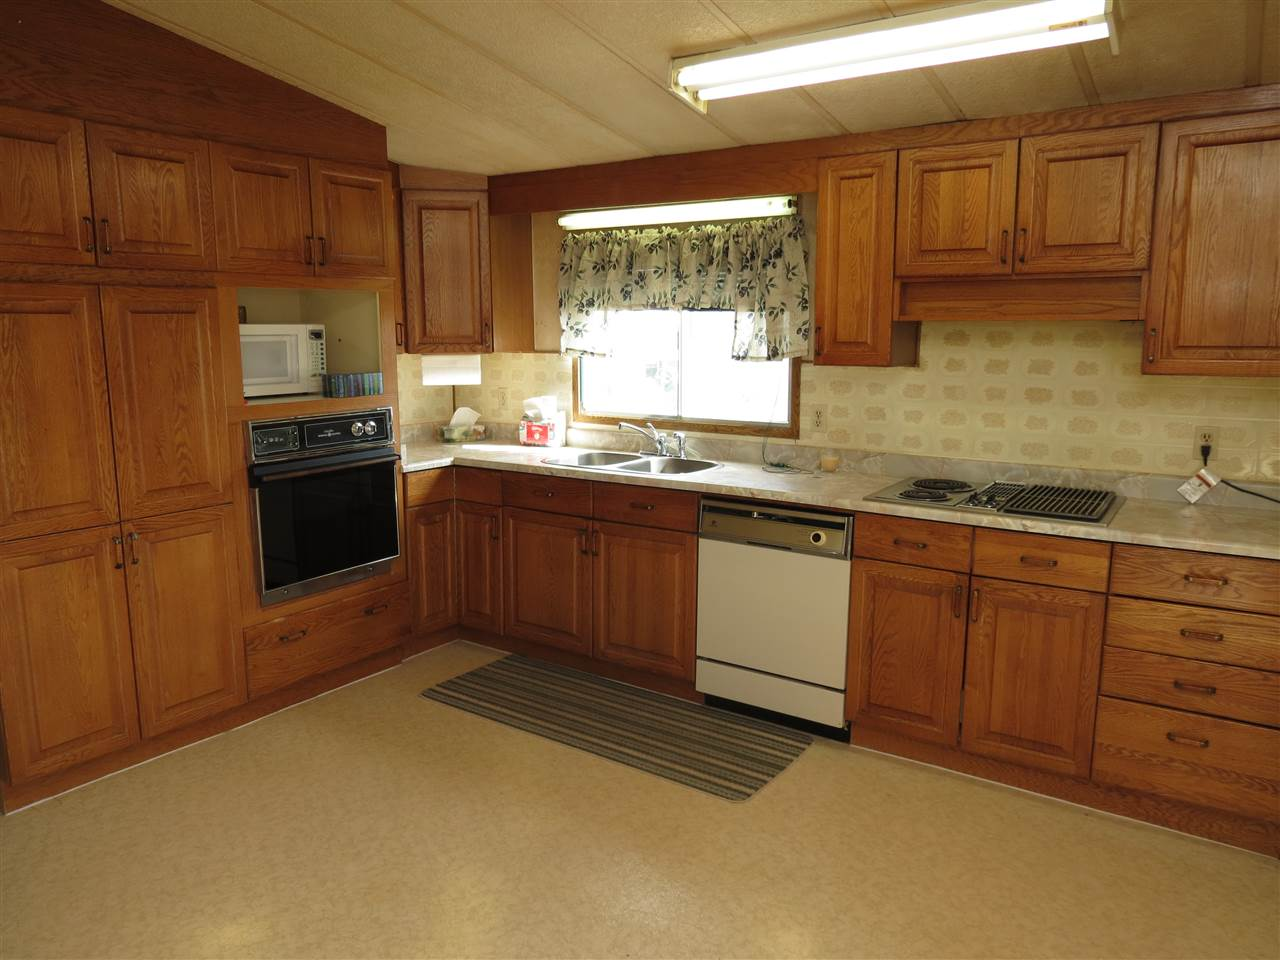 Photo 5: 4715 49A Street: Vimy Manufactured Home for sale : MLS(r) # E4063525